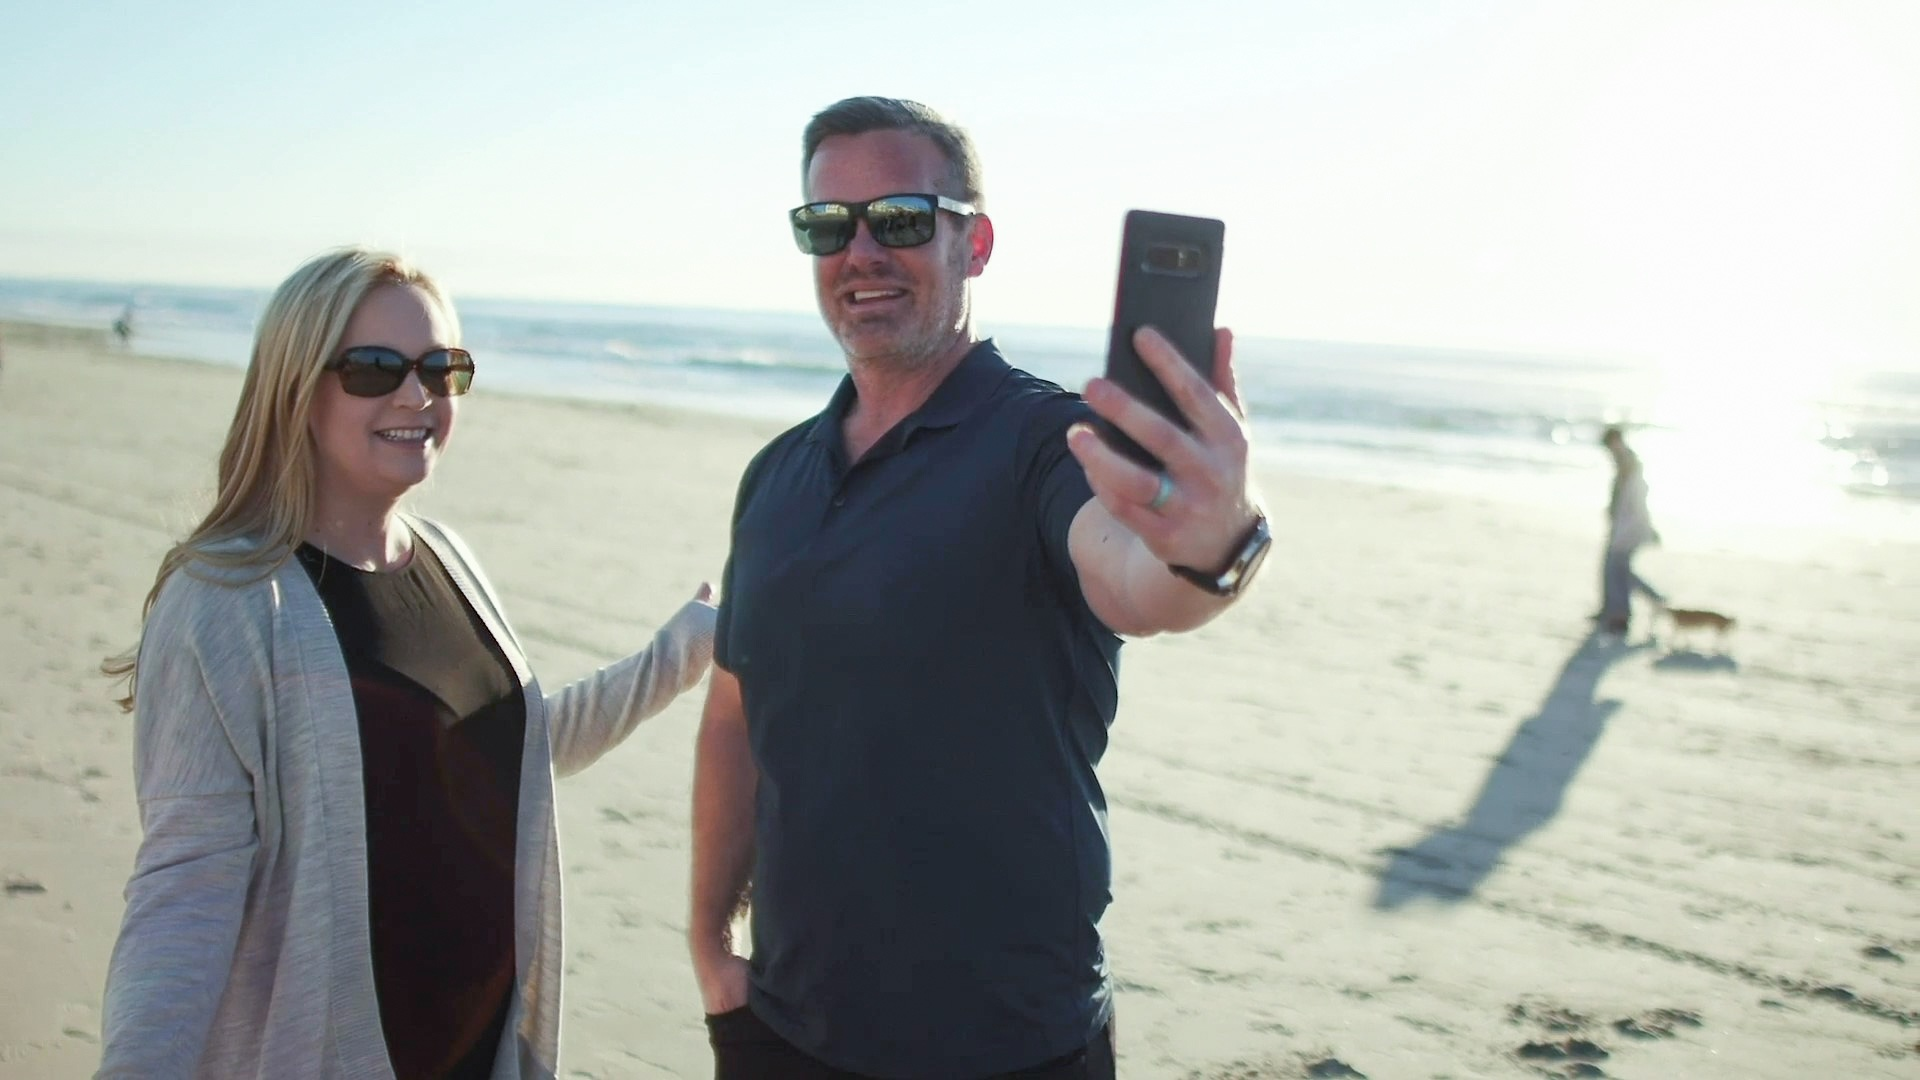 Pete and Heather Reese doing a live video on the beach